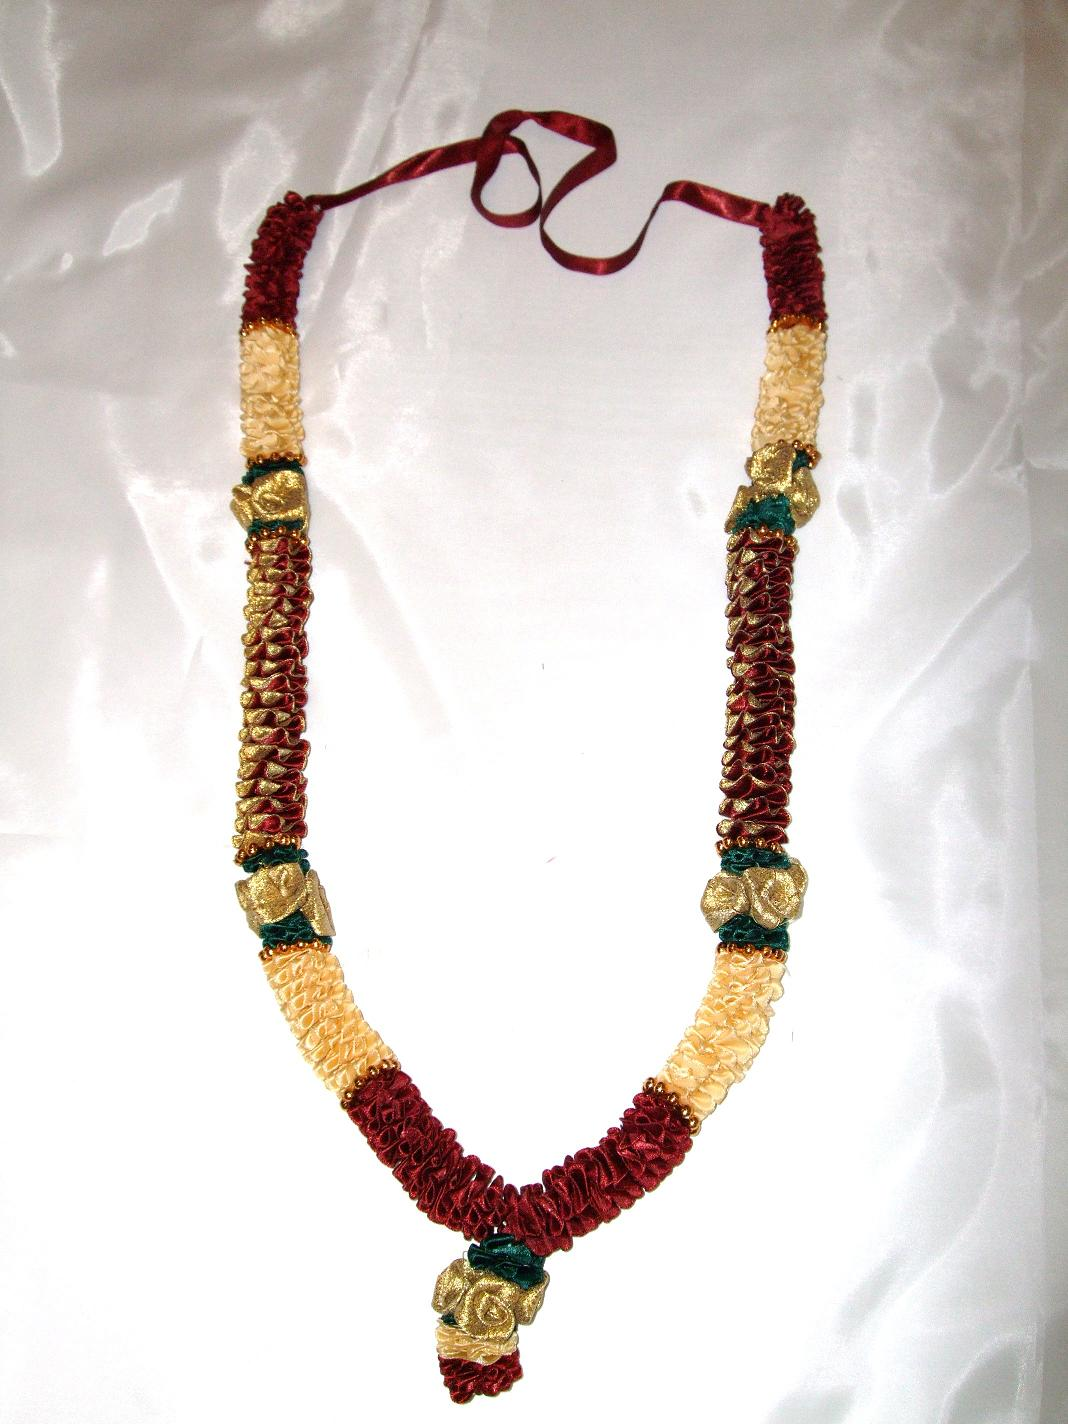 Milni Haar/ Wedding Garlands (Gold/Maroon)